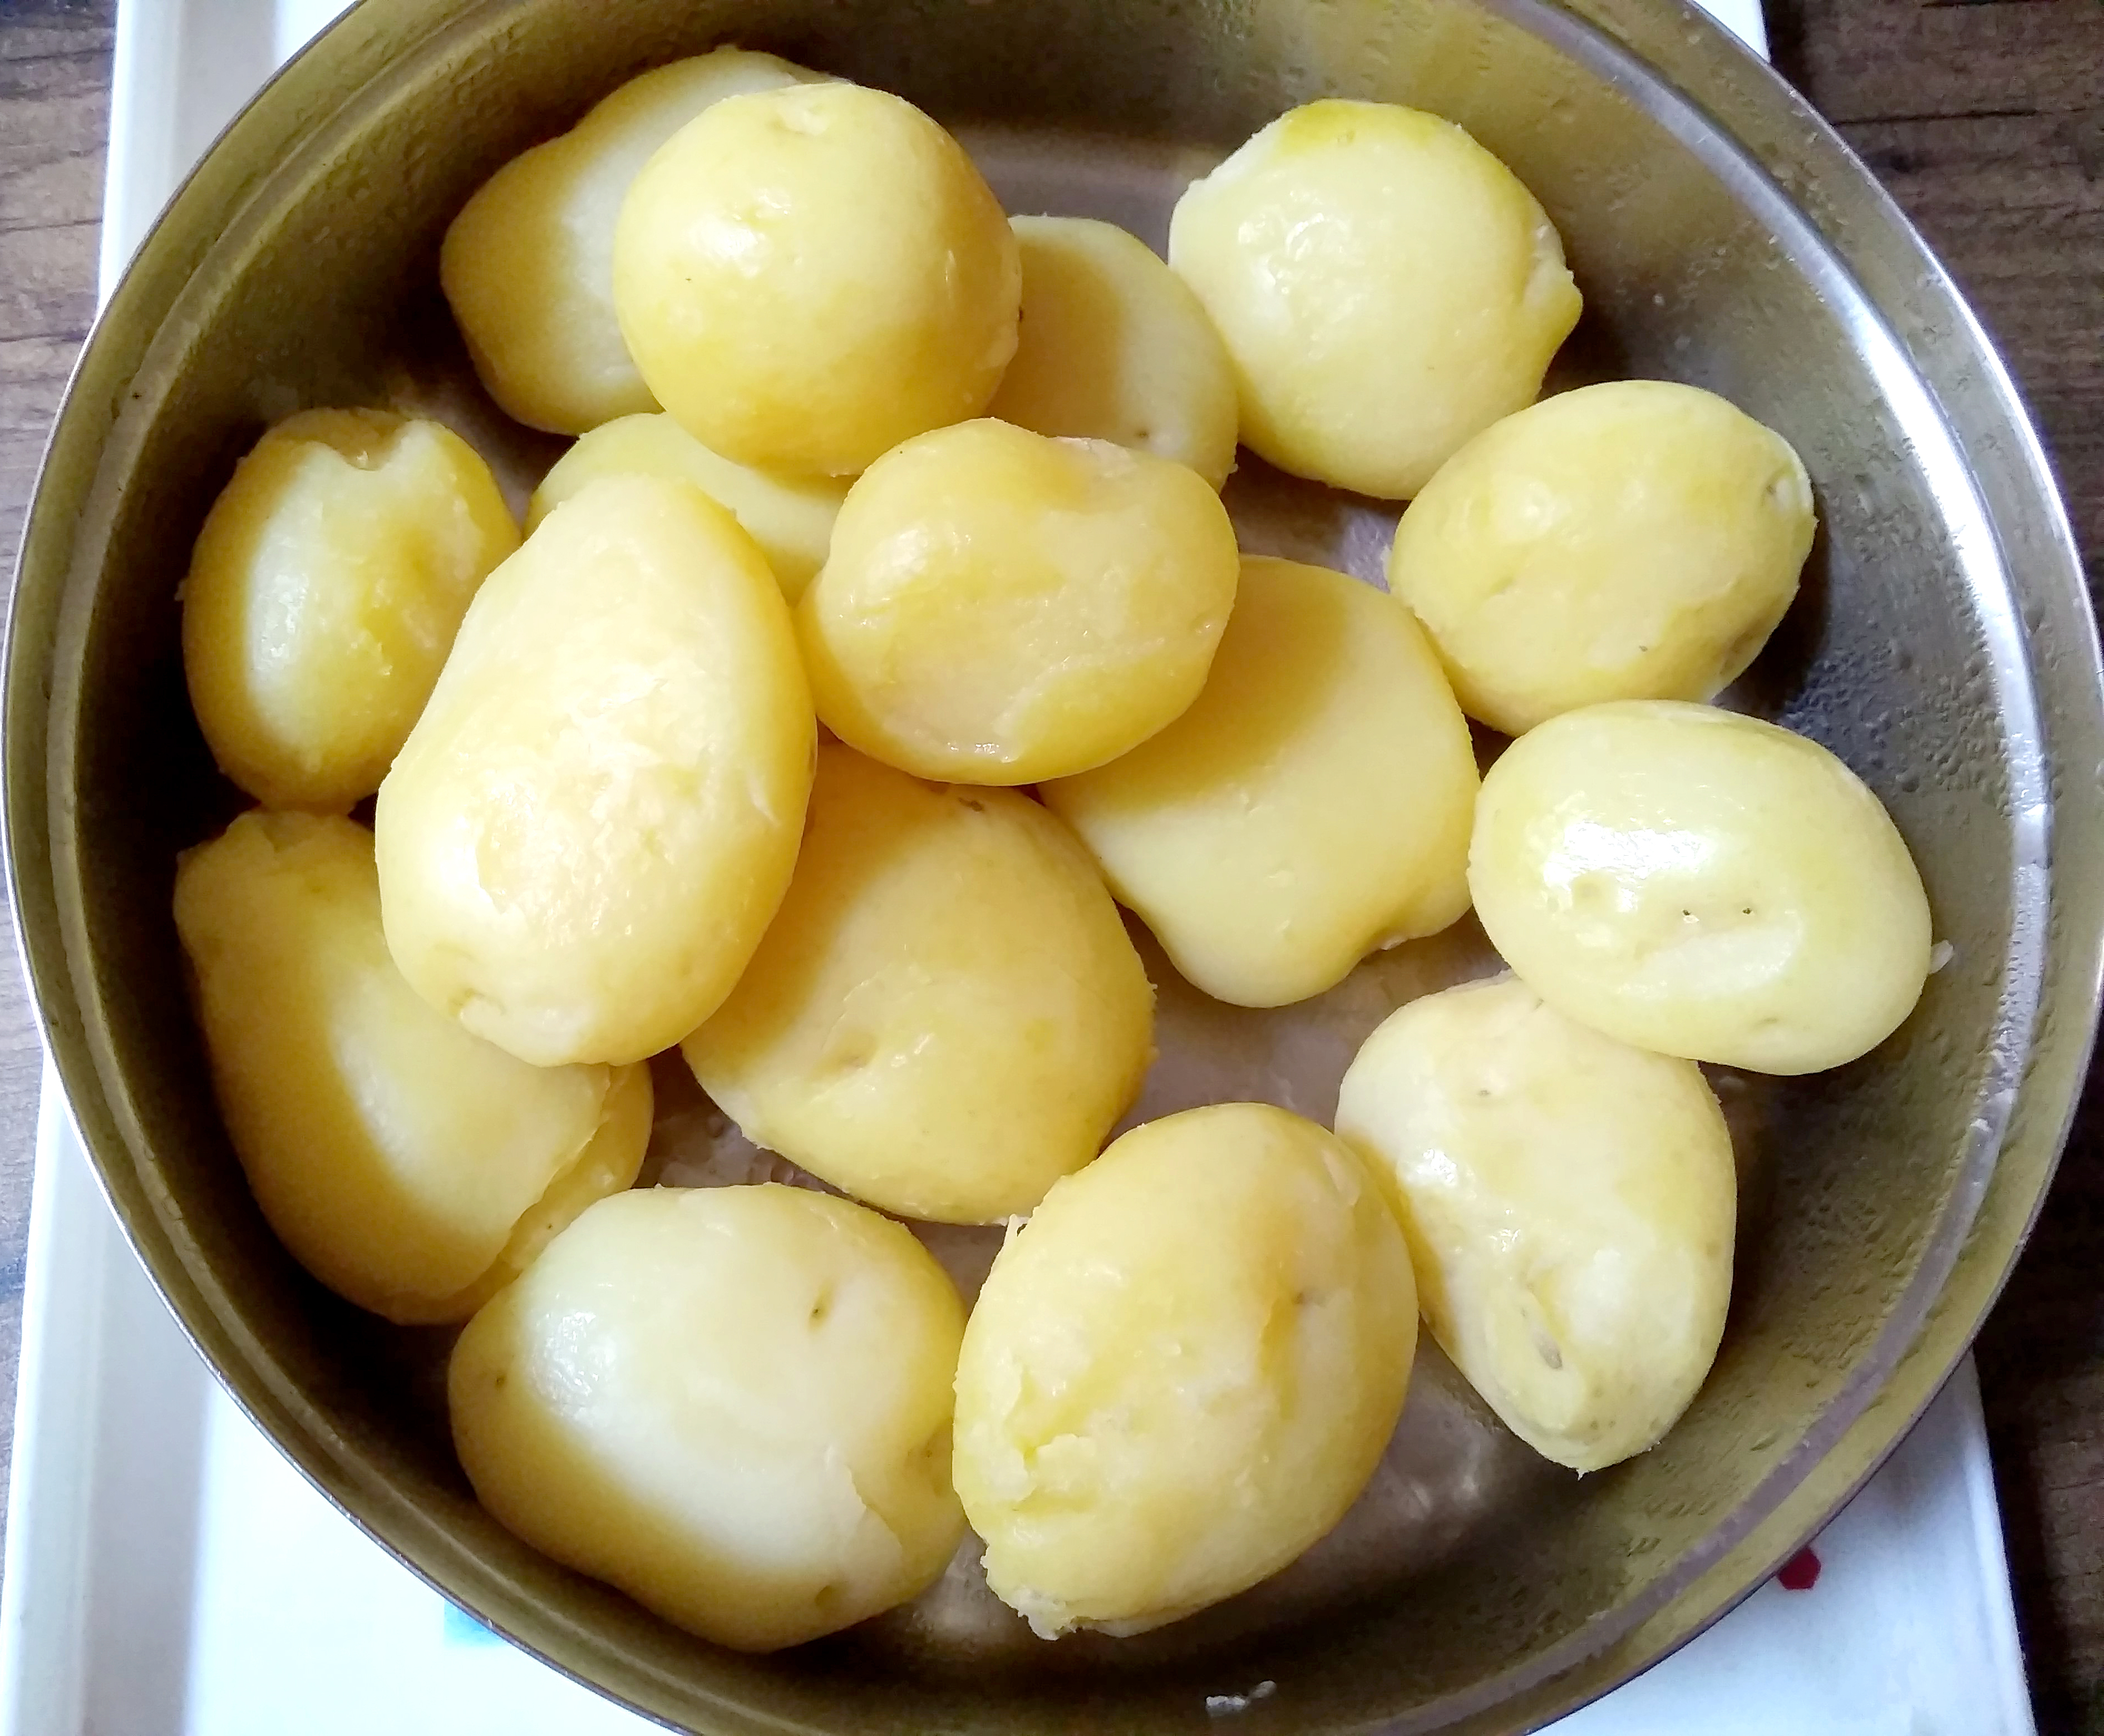 Bowl of freshly boiled potatoes ready for serving